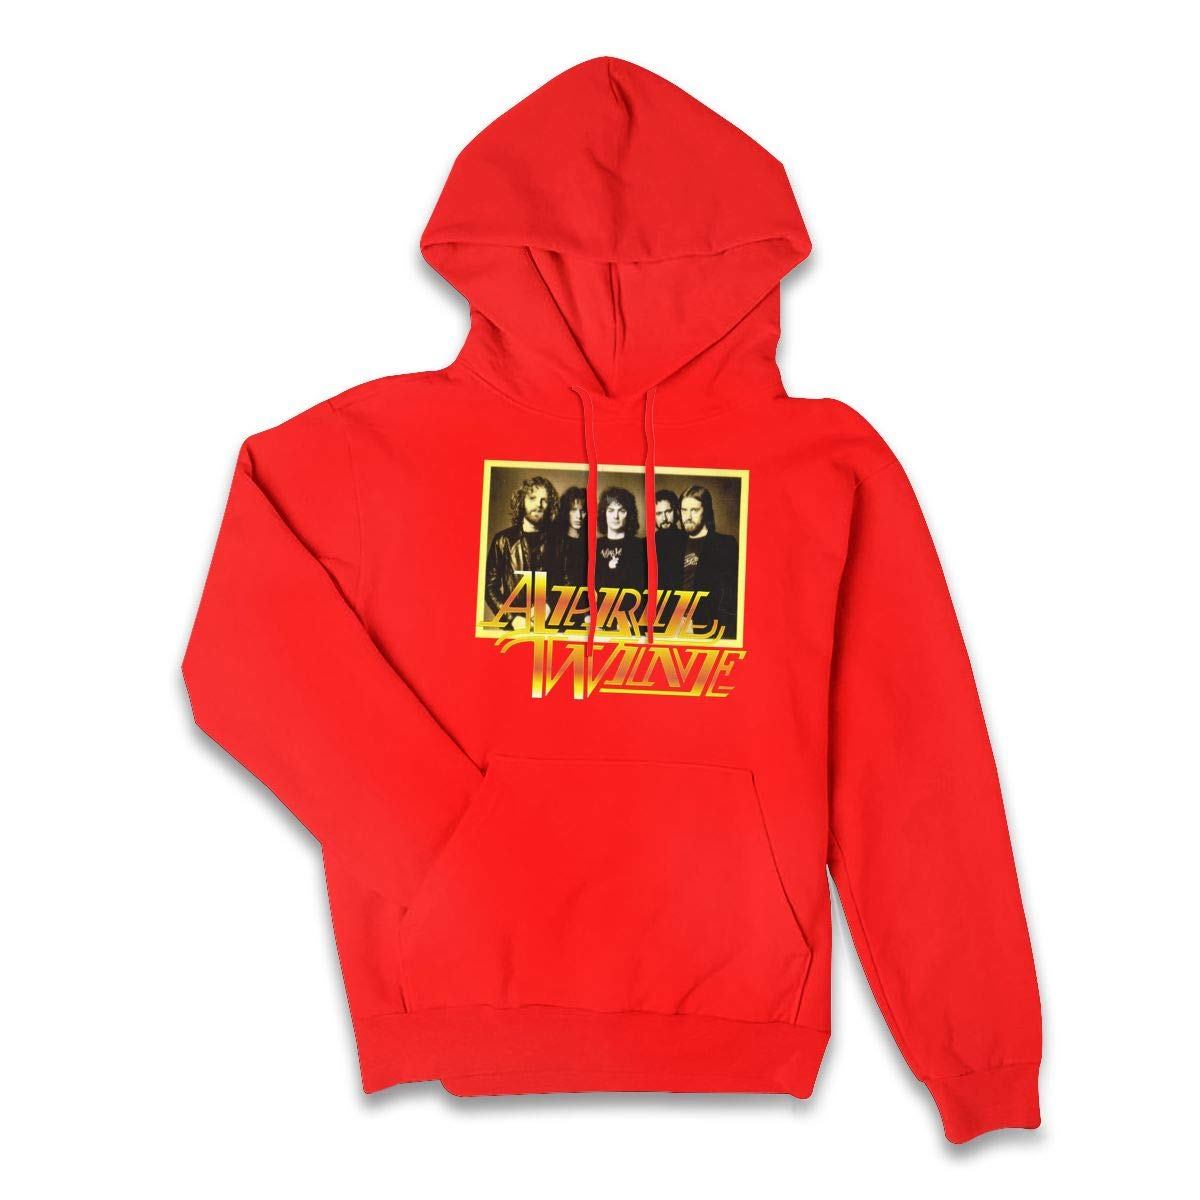 Erman Color Name Comfortable April Wine 1 Pullover Hooded Shirts With Pocket M